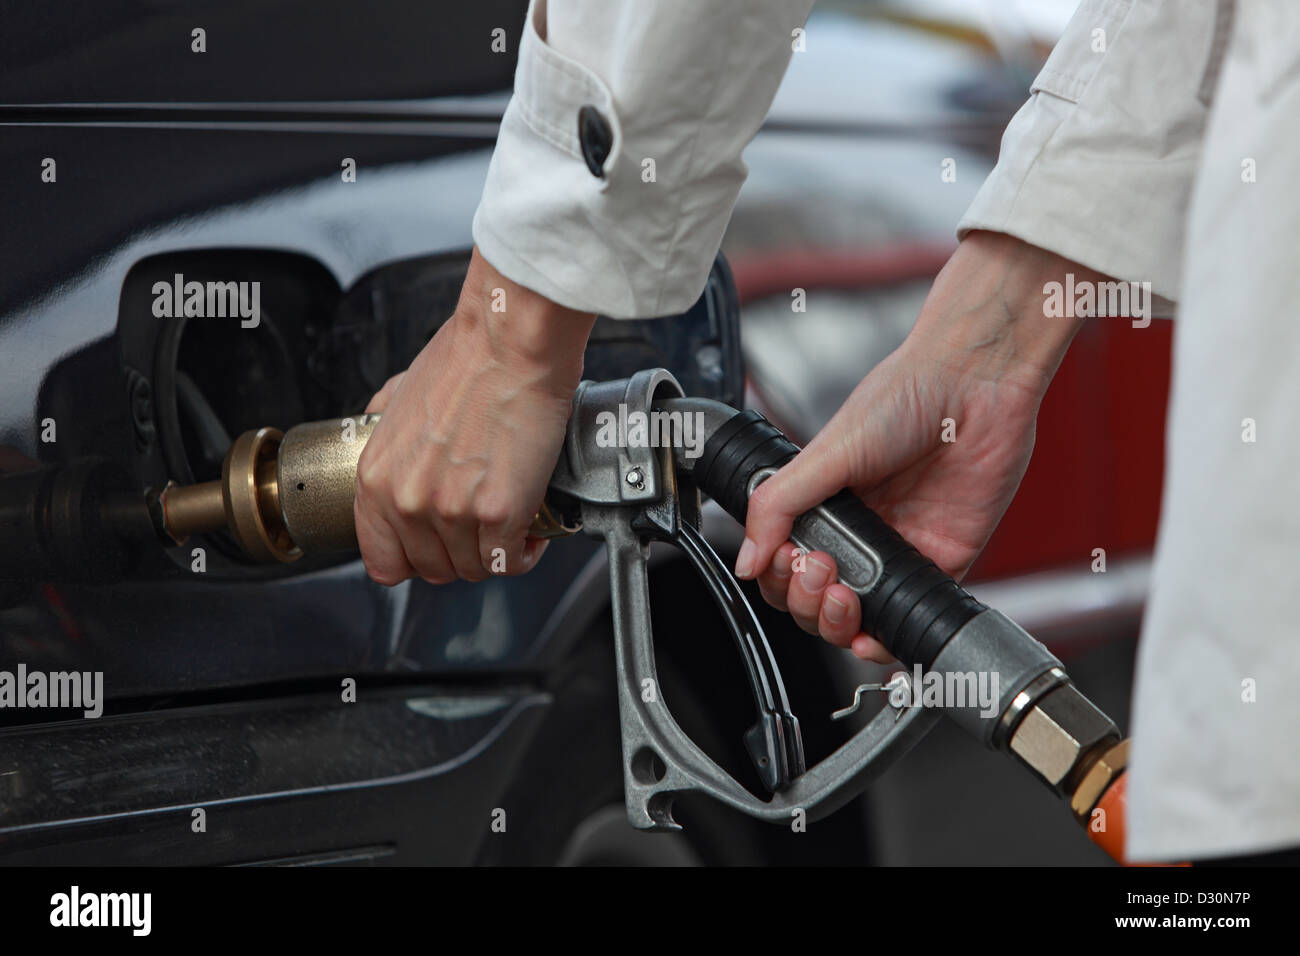 Berlin, Germany, the hands of a motorist when refueling gas - Stock Image